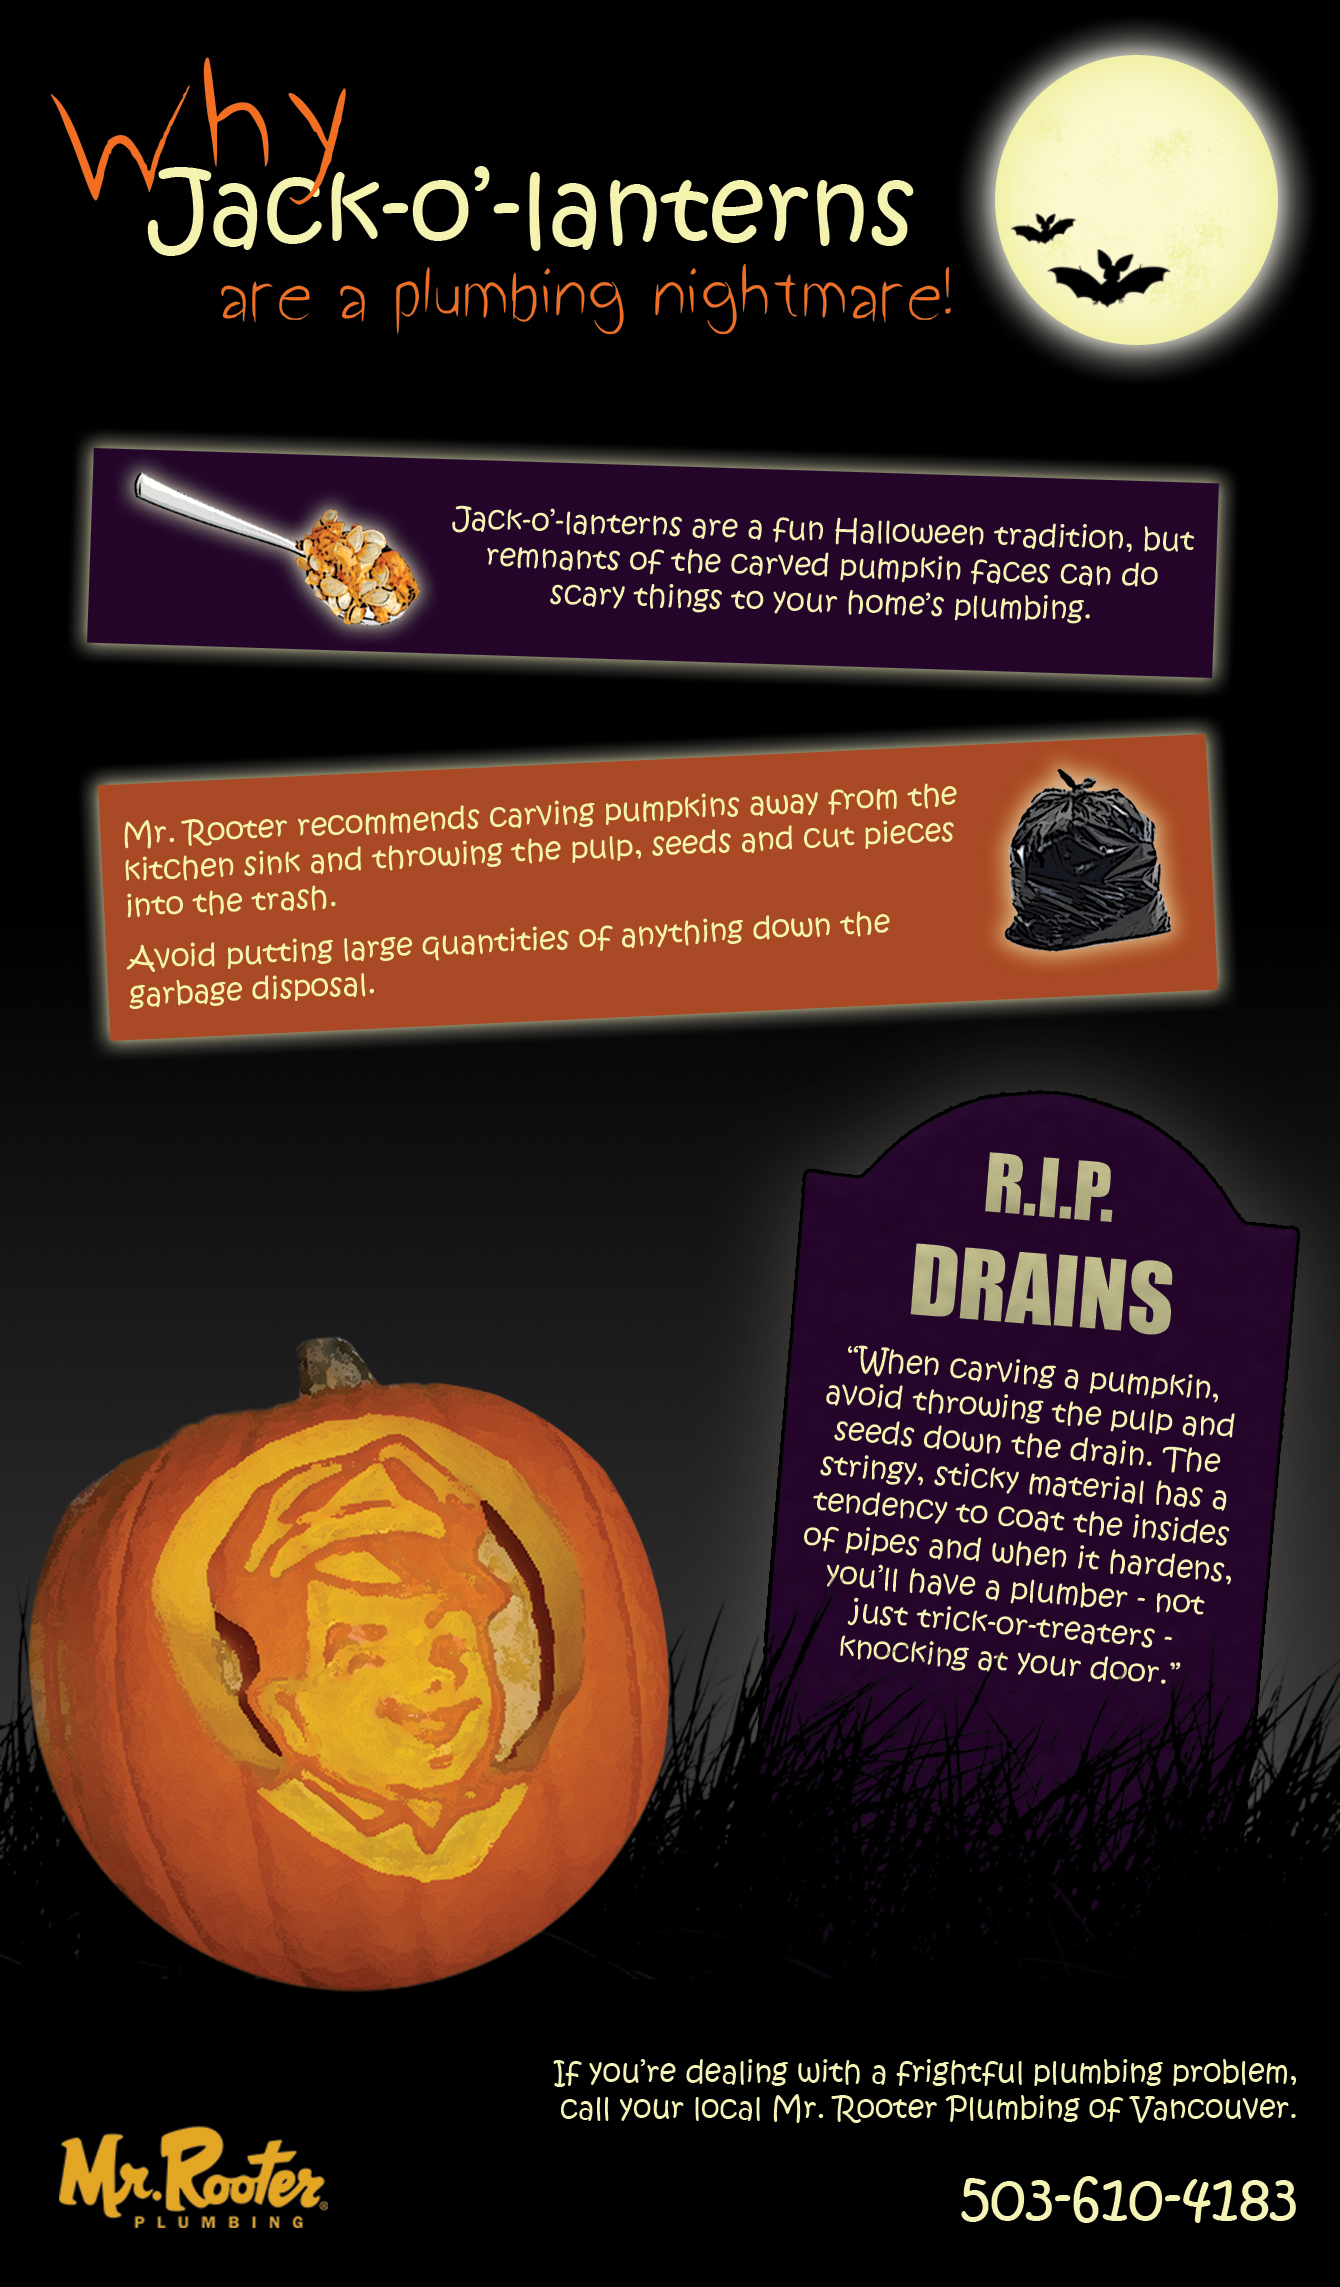 Mr. Rooter Plumbing infographic about why Jack-o'-lanterns are a plumbing nightmare